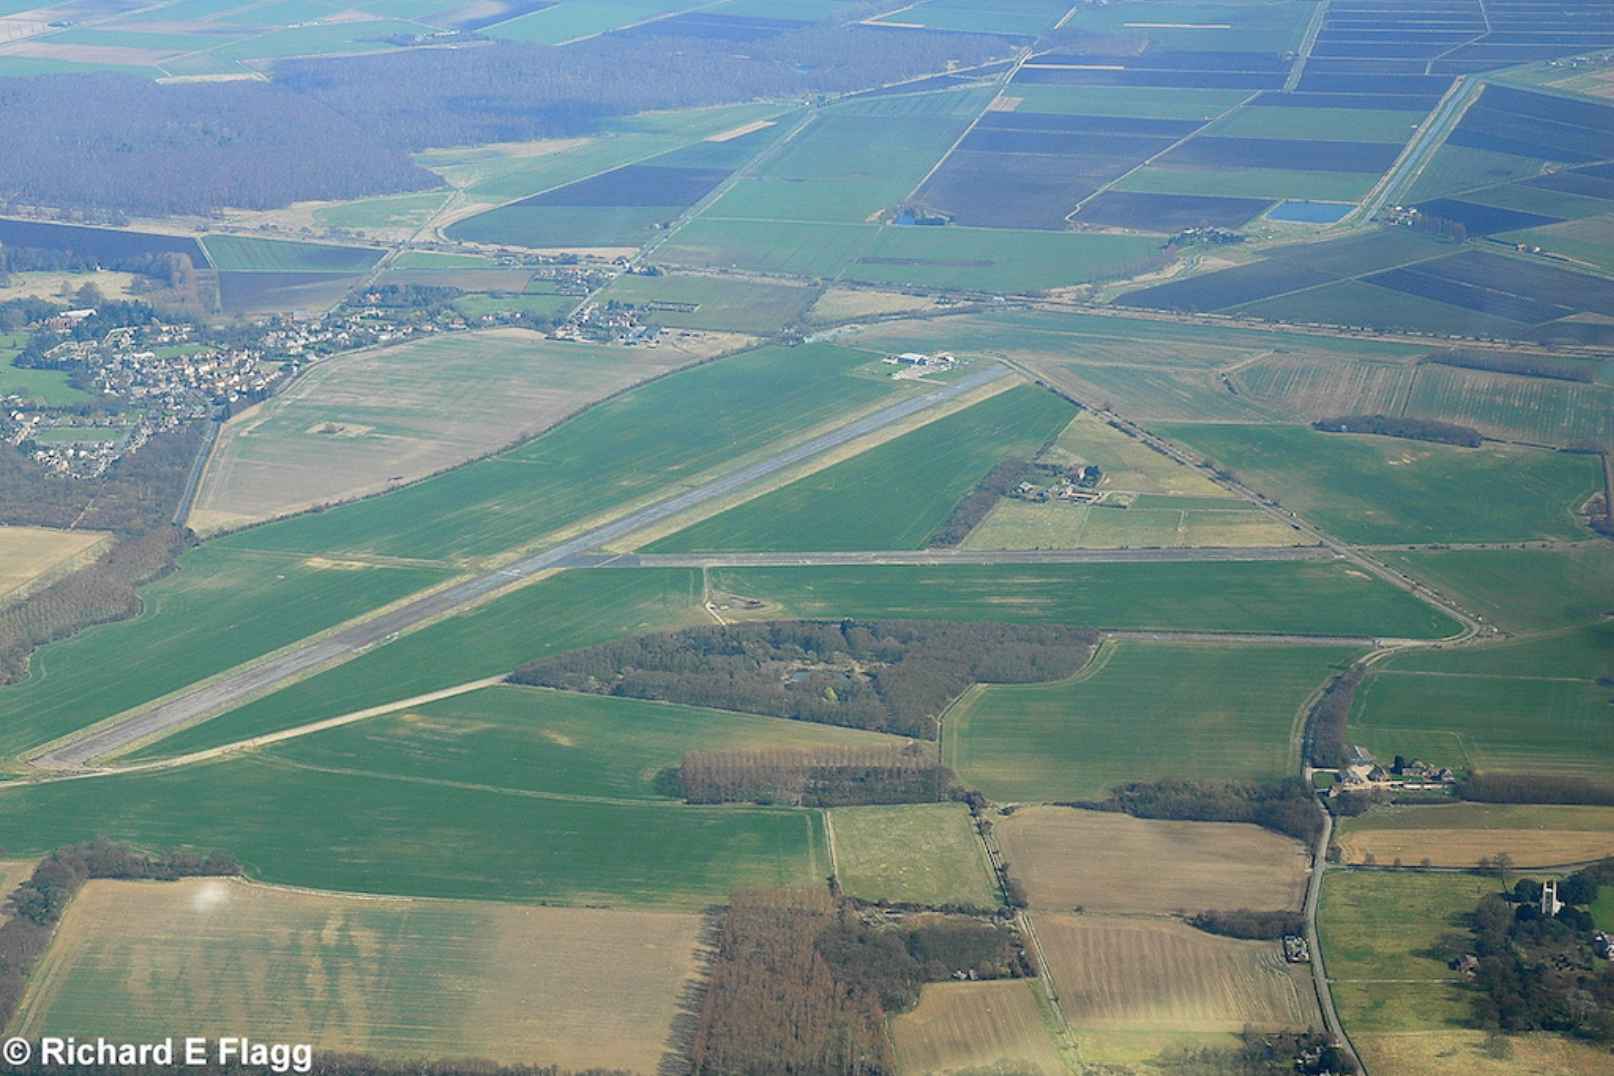 007Aerial View 2 of RAF Glatton Airfield - 22 March 2009.png